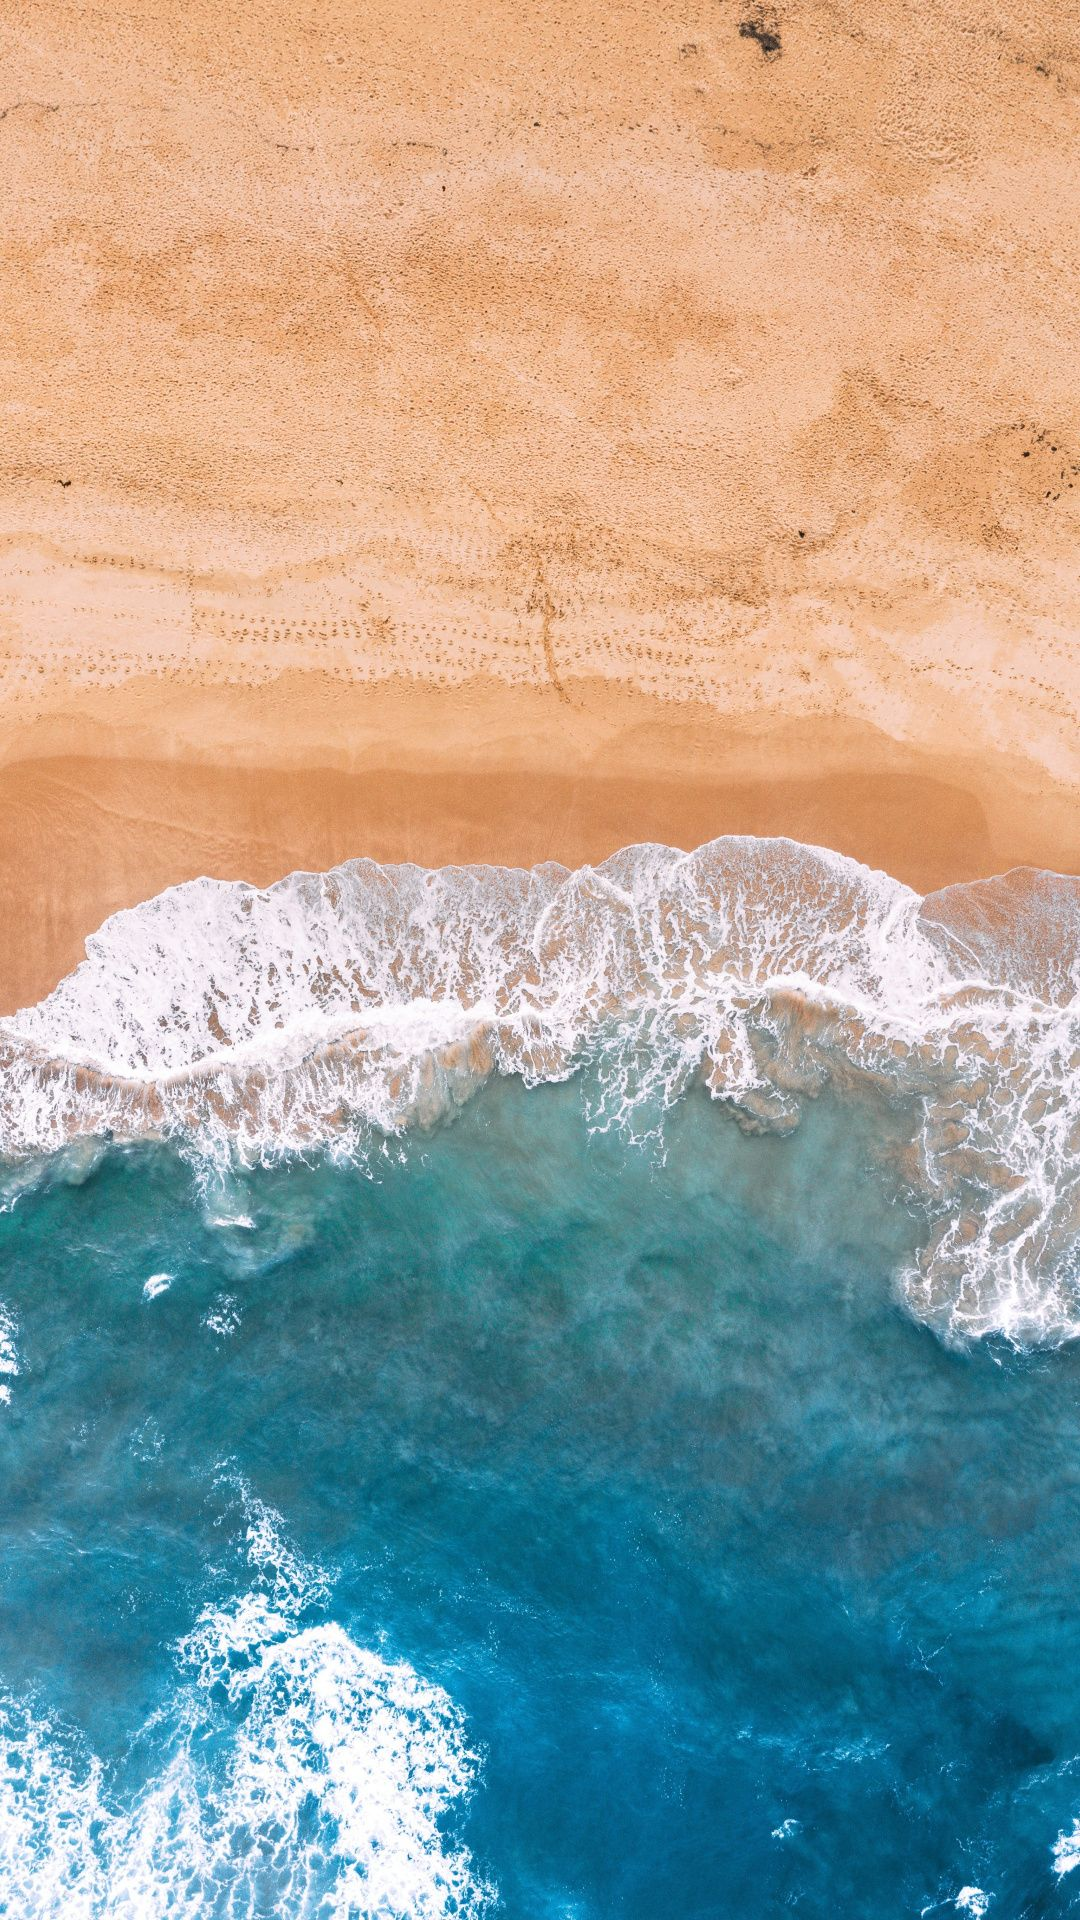 Downaload Blue Sea Waves Beach Aerial View Wallpaper For Screen 1080x1920 Samsung Galaxy S4 S5 Note Sony Beach Aerial View View Wallpaper Nature Images